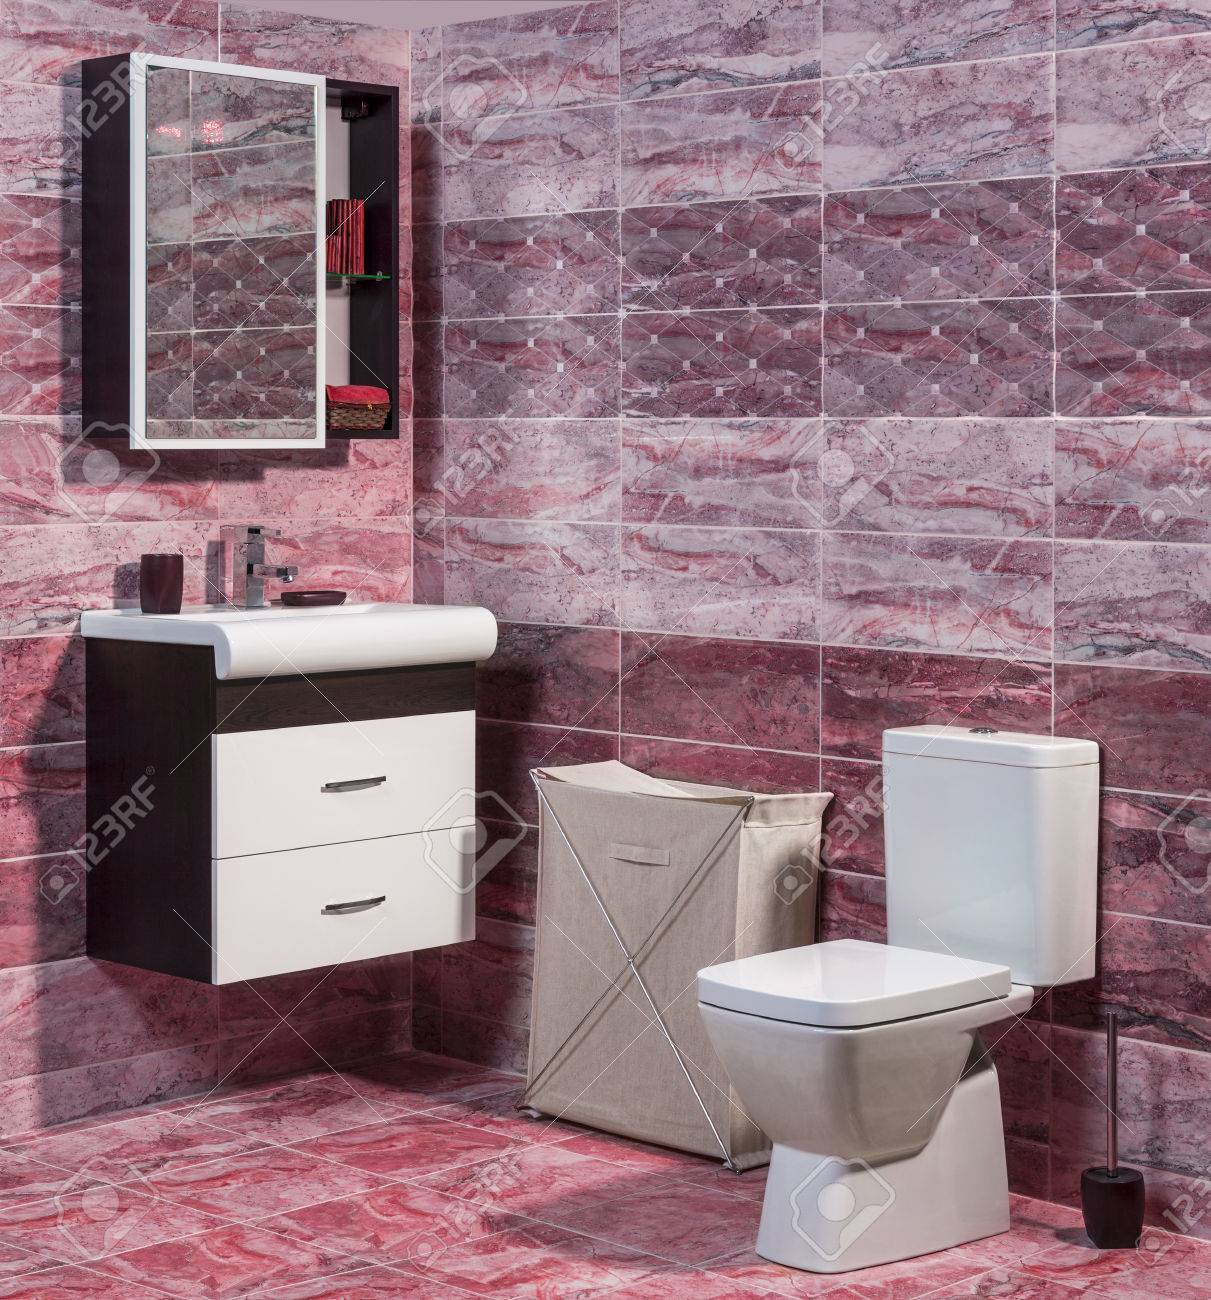 Inside Of Fashionable Bathroom In Red Color - Toilet And Sink Stock ...